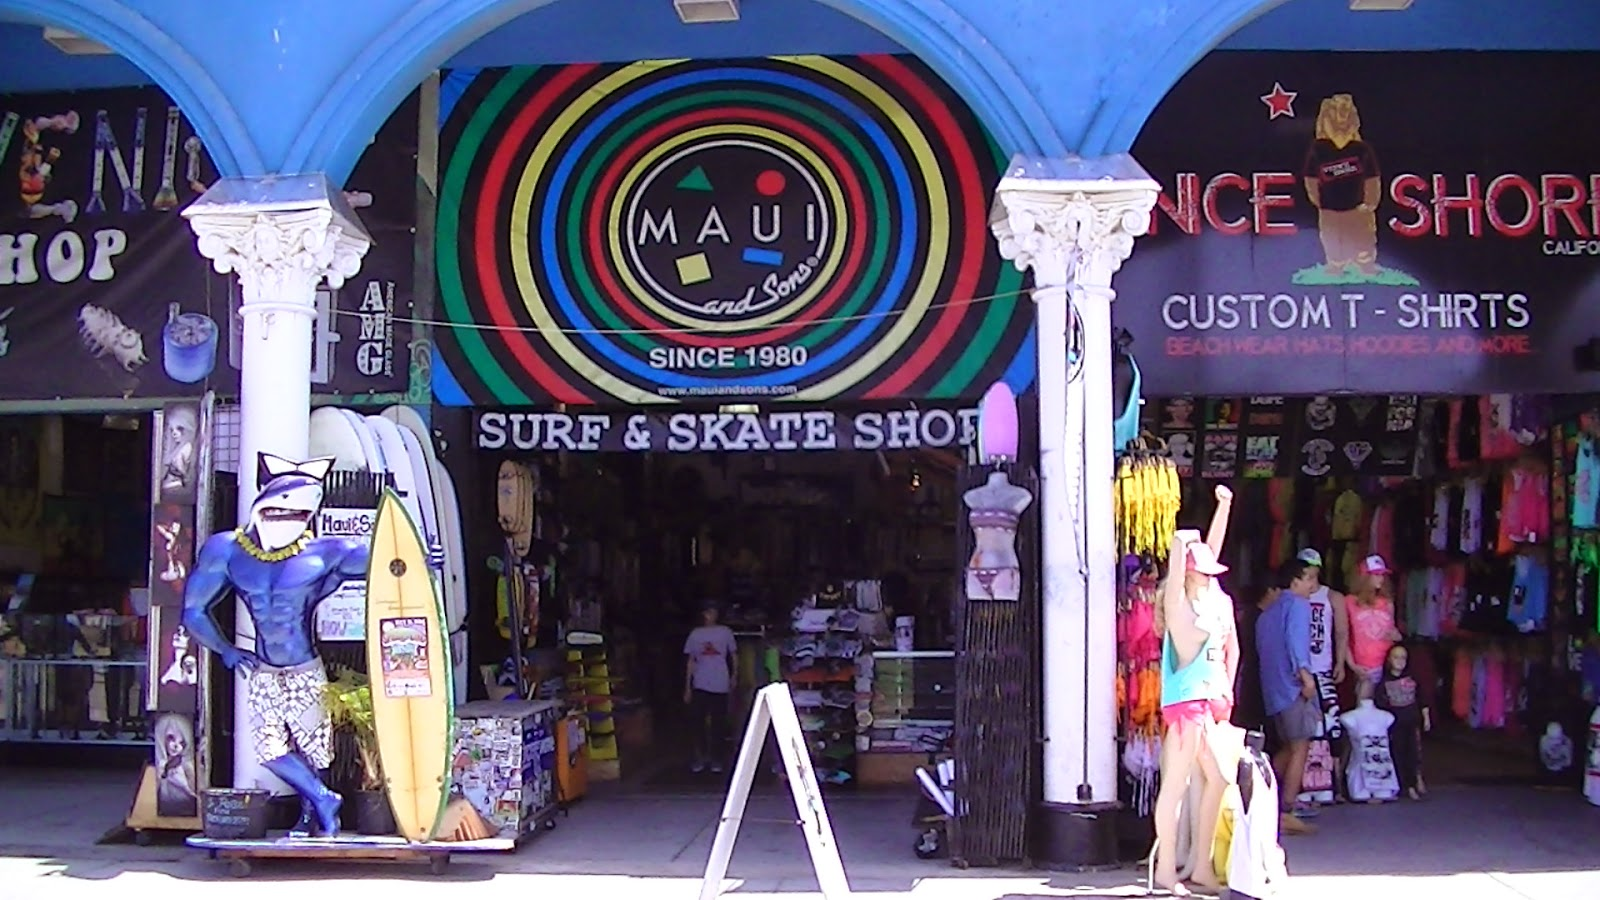 """Maui & Sons's shop on Ocean Front Walk. Photo: <a href=""""http://www.surfshoptshirtroadtrip.com/2014/07/maui-and-sons-surf-shop.html"""" target=""""_blank"""">via</a>"""